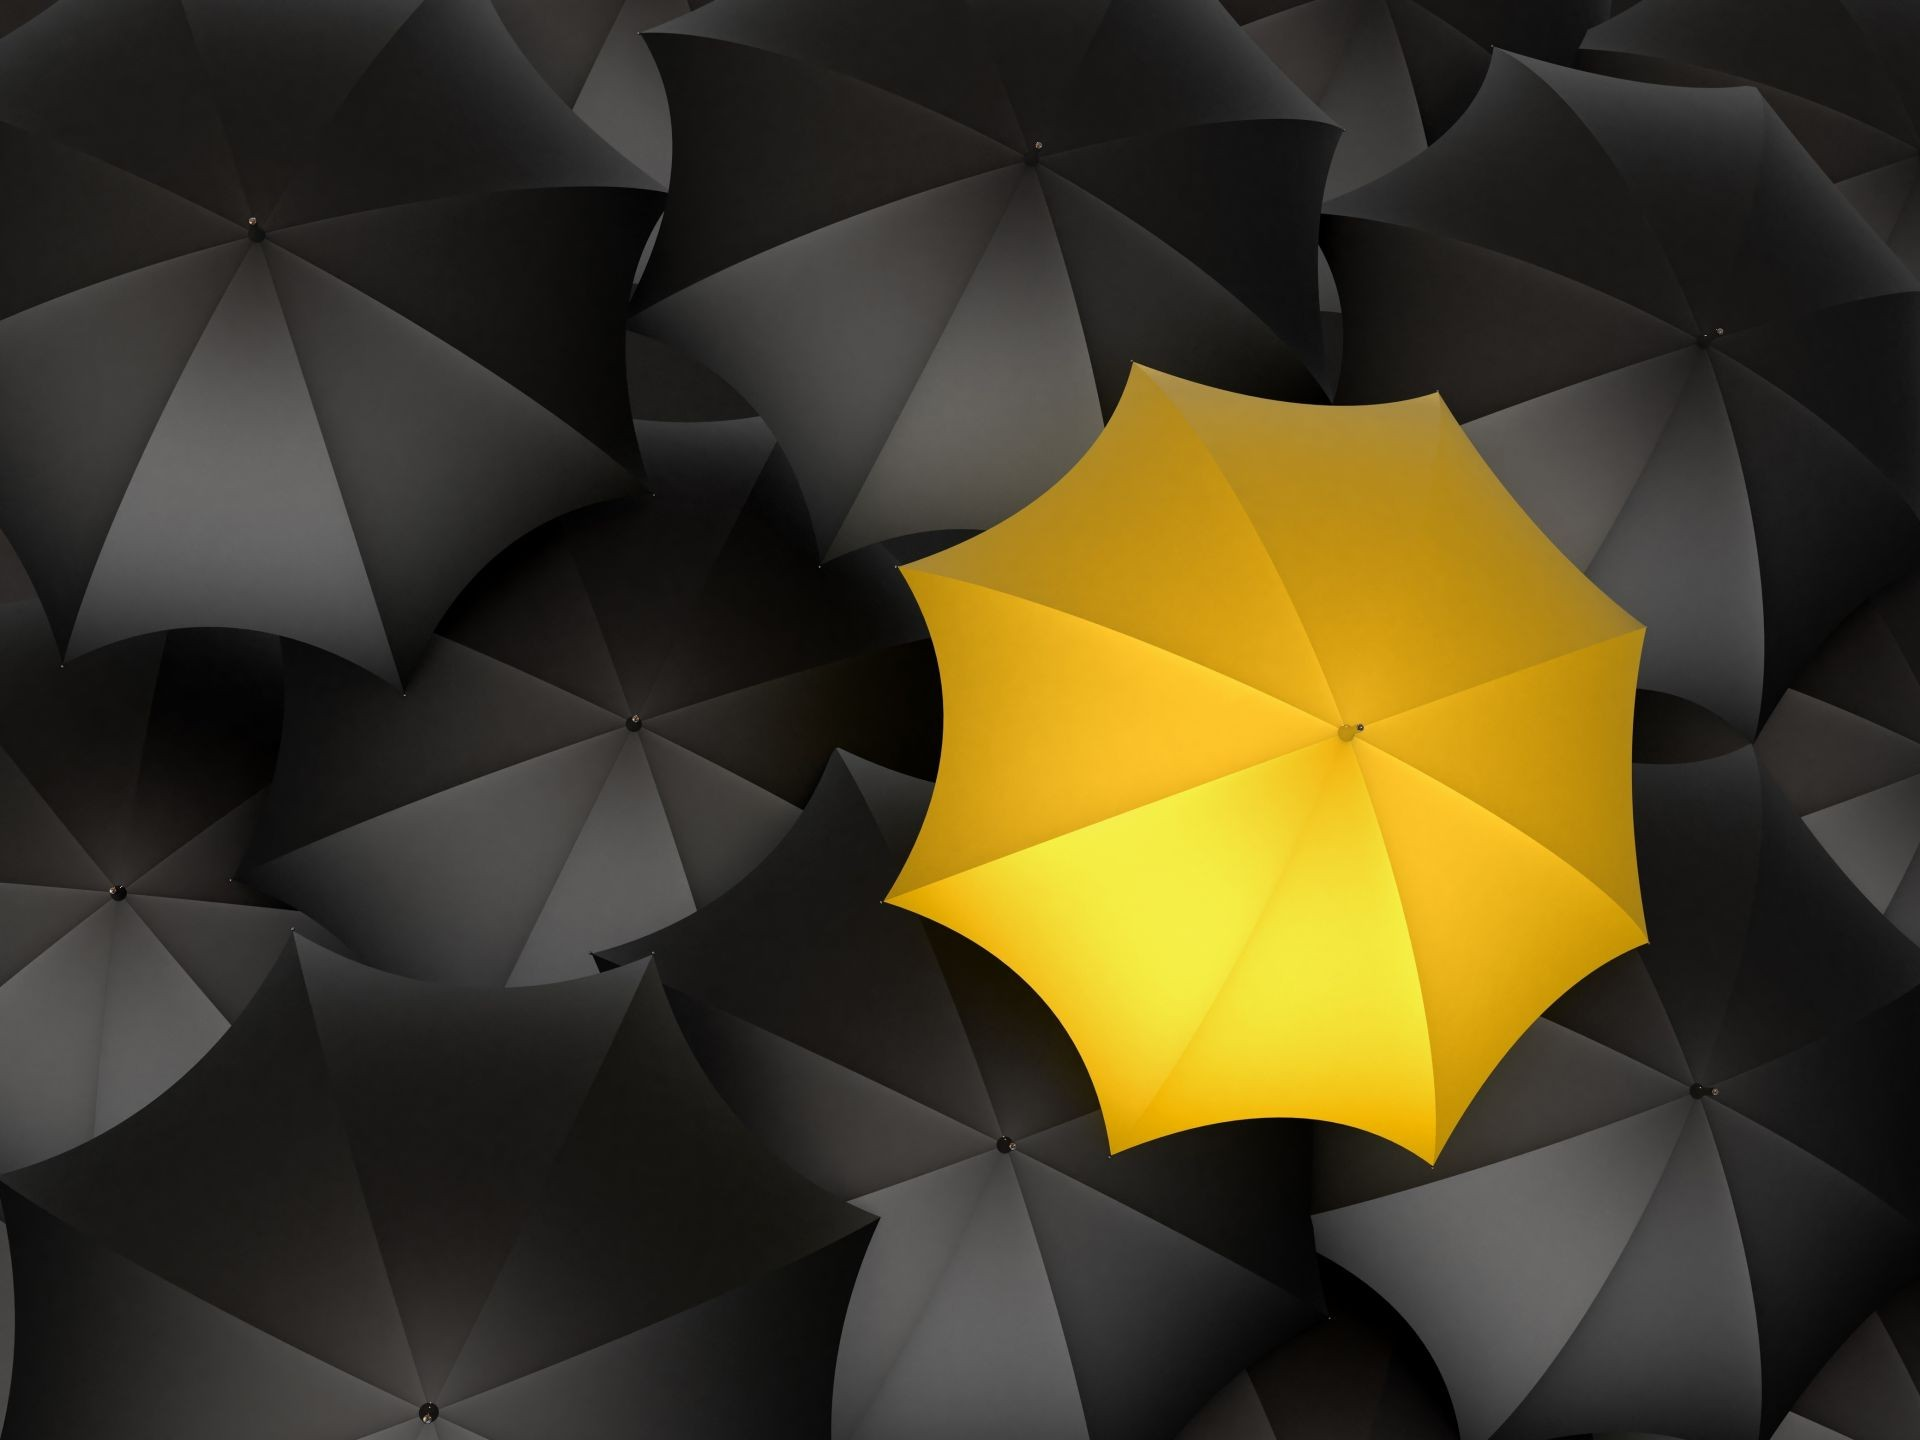 umbrellas black yellow